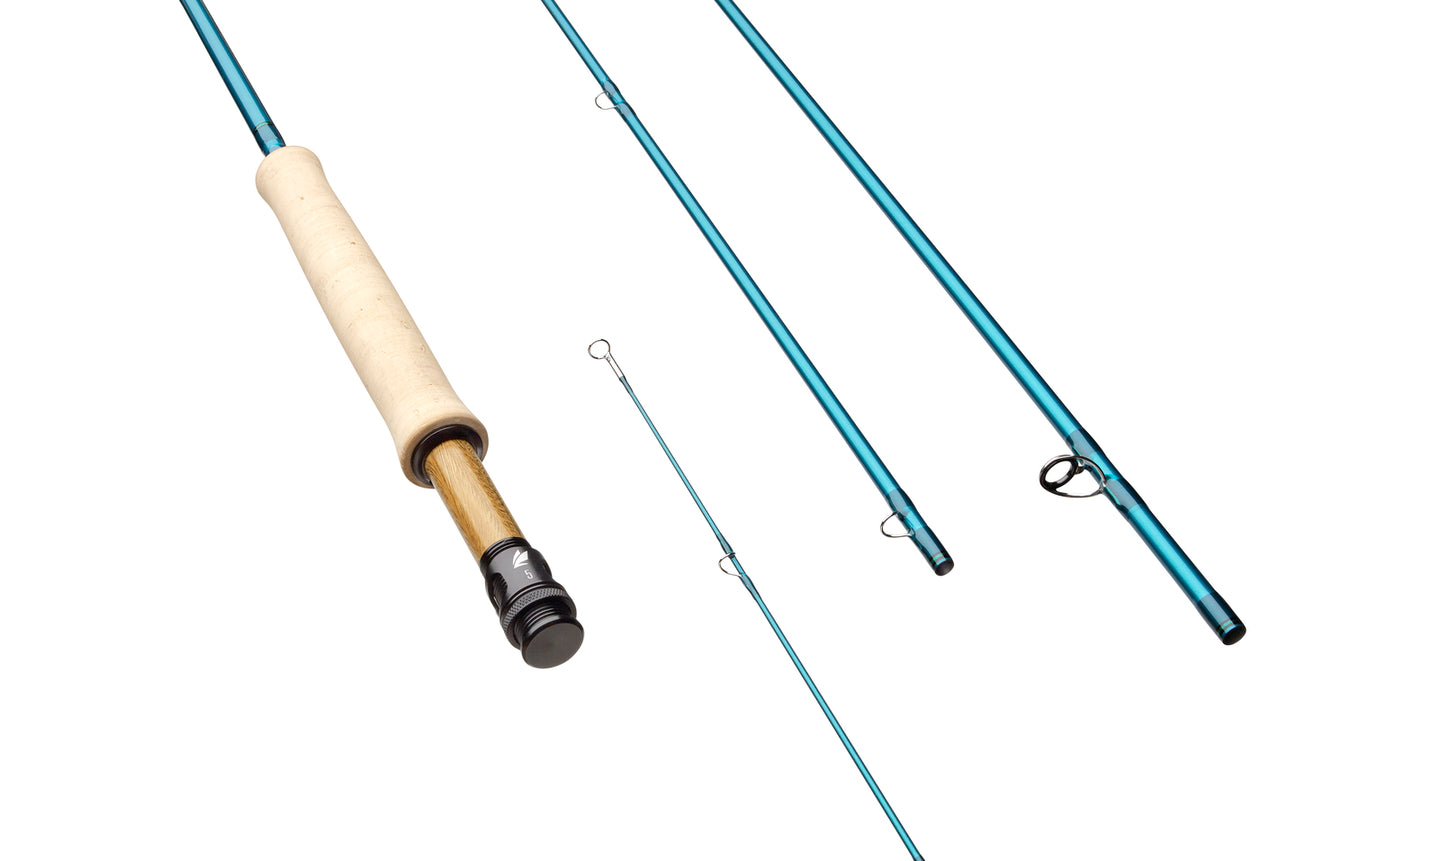 Sage X Fly Rods - Special Edition Colors - Teal [DISCONTINUED]